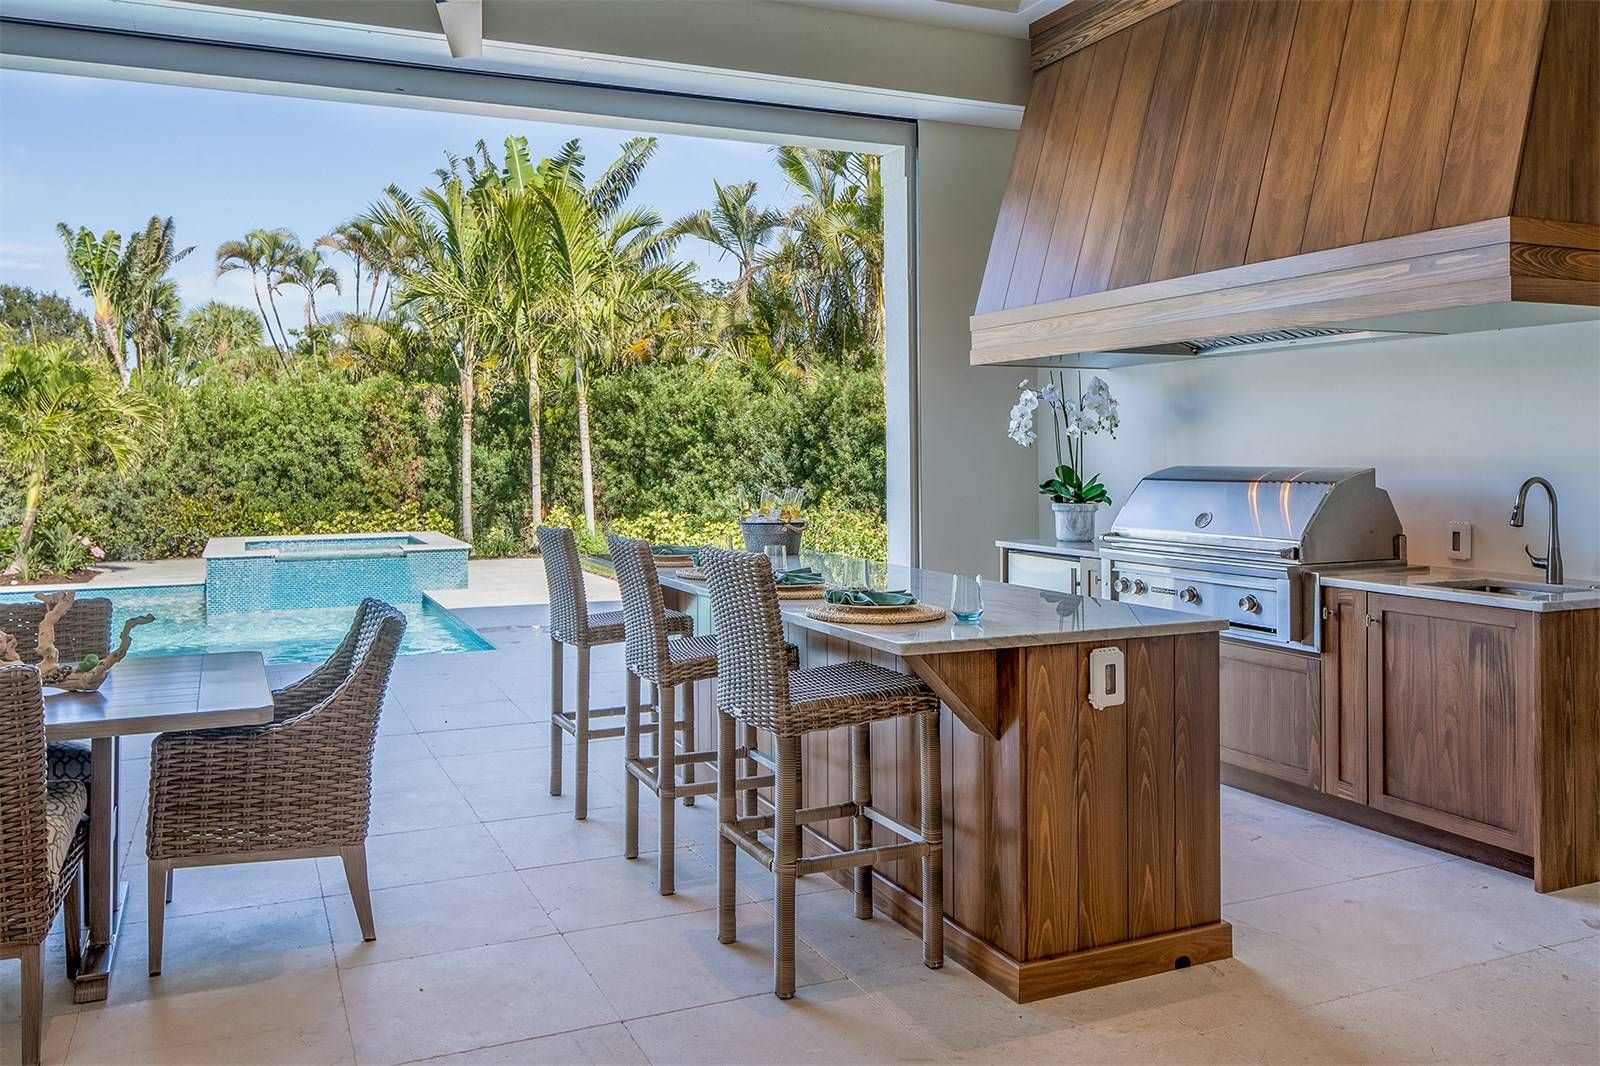 727 Buttonbush Lane Naples Fl 34108 Outdoor Summer Kitchen With Sedona Gas Grill Built In Fridge And S With Images Outdoor Kitchen Outdoor Furniture Sets Luxury Homes